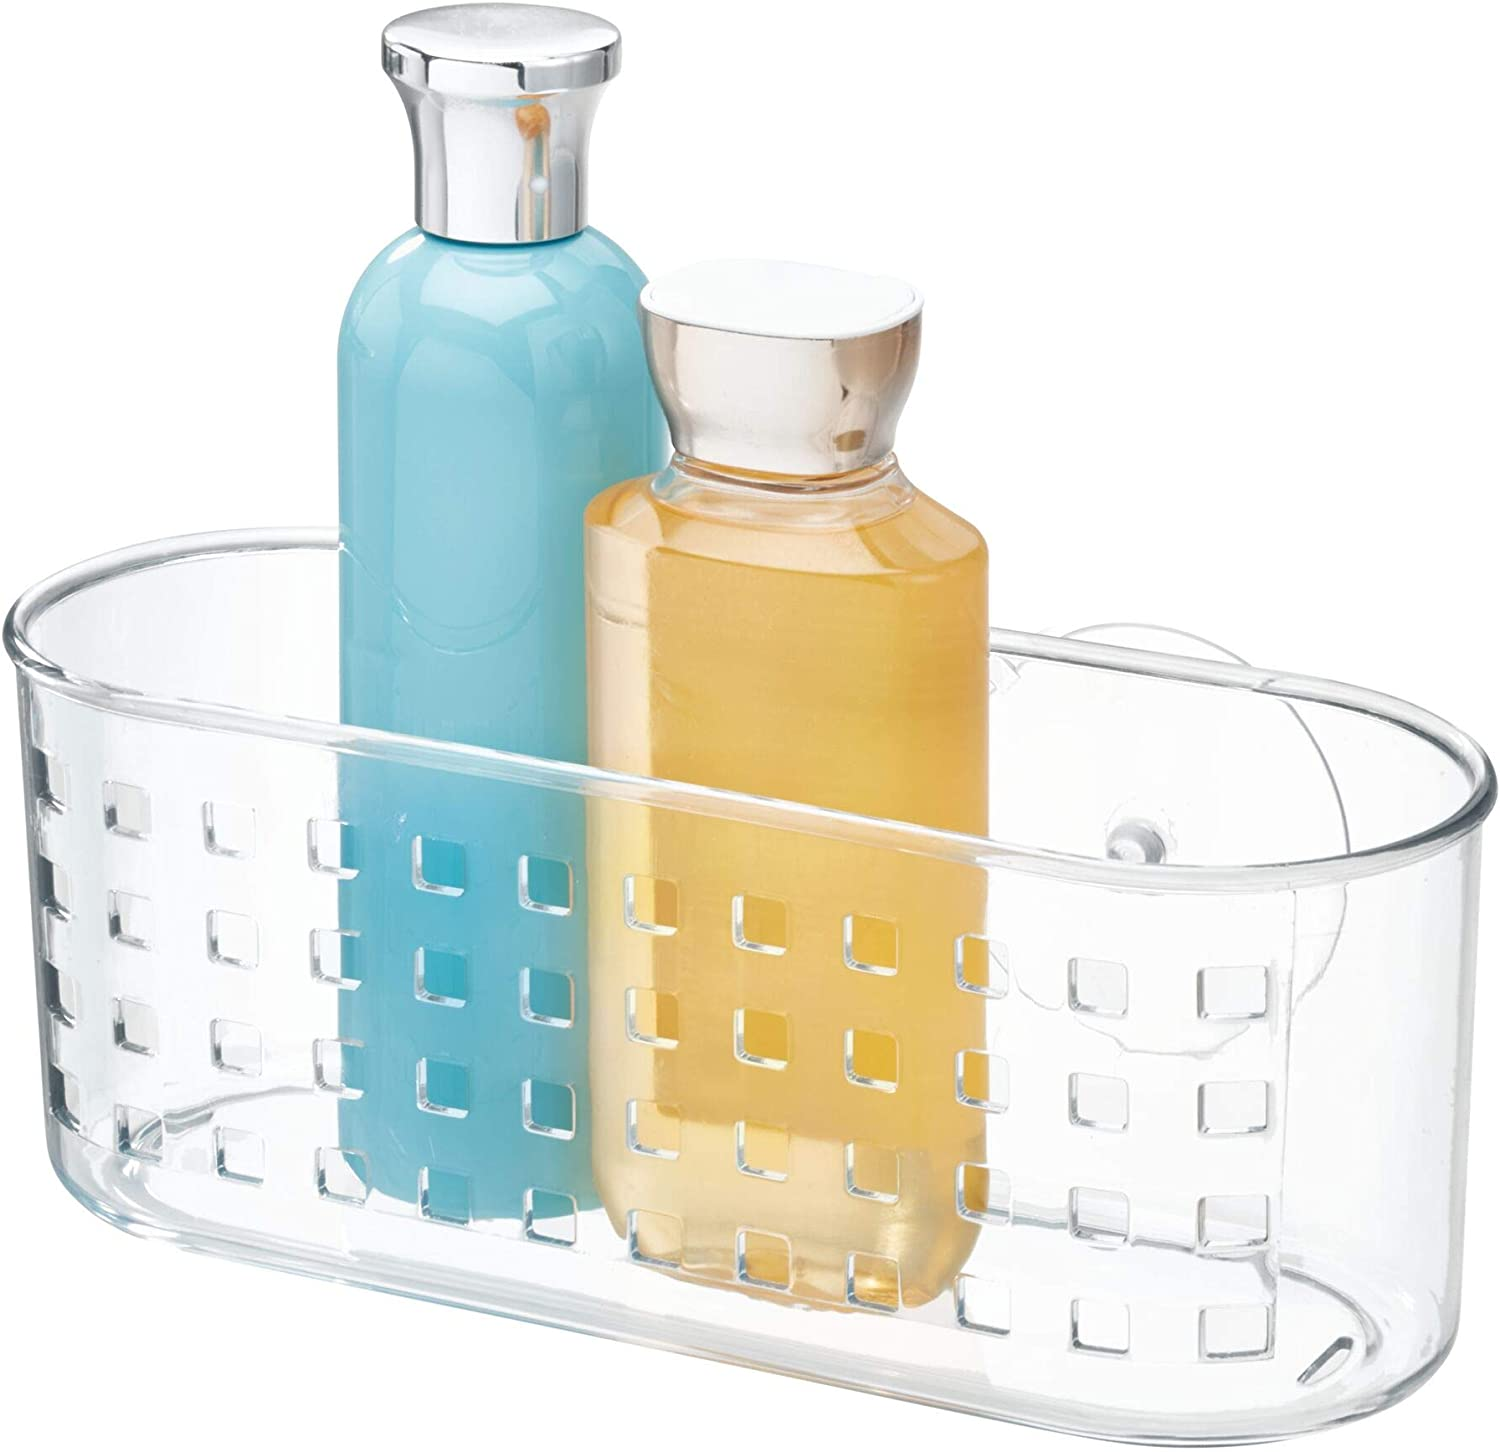 iDesign Shower Basket with Strong Suction Cups, Small Shower Organiser Made of Durable Plastic, Compact Shower Caddy for Sponge, Shampoo or Shower Gel, Clear